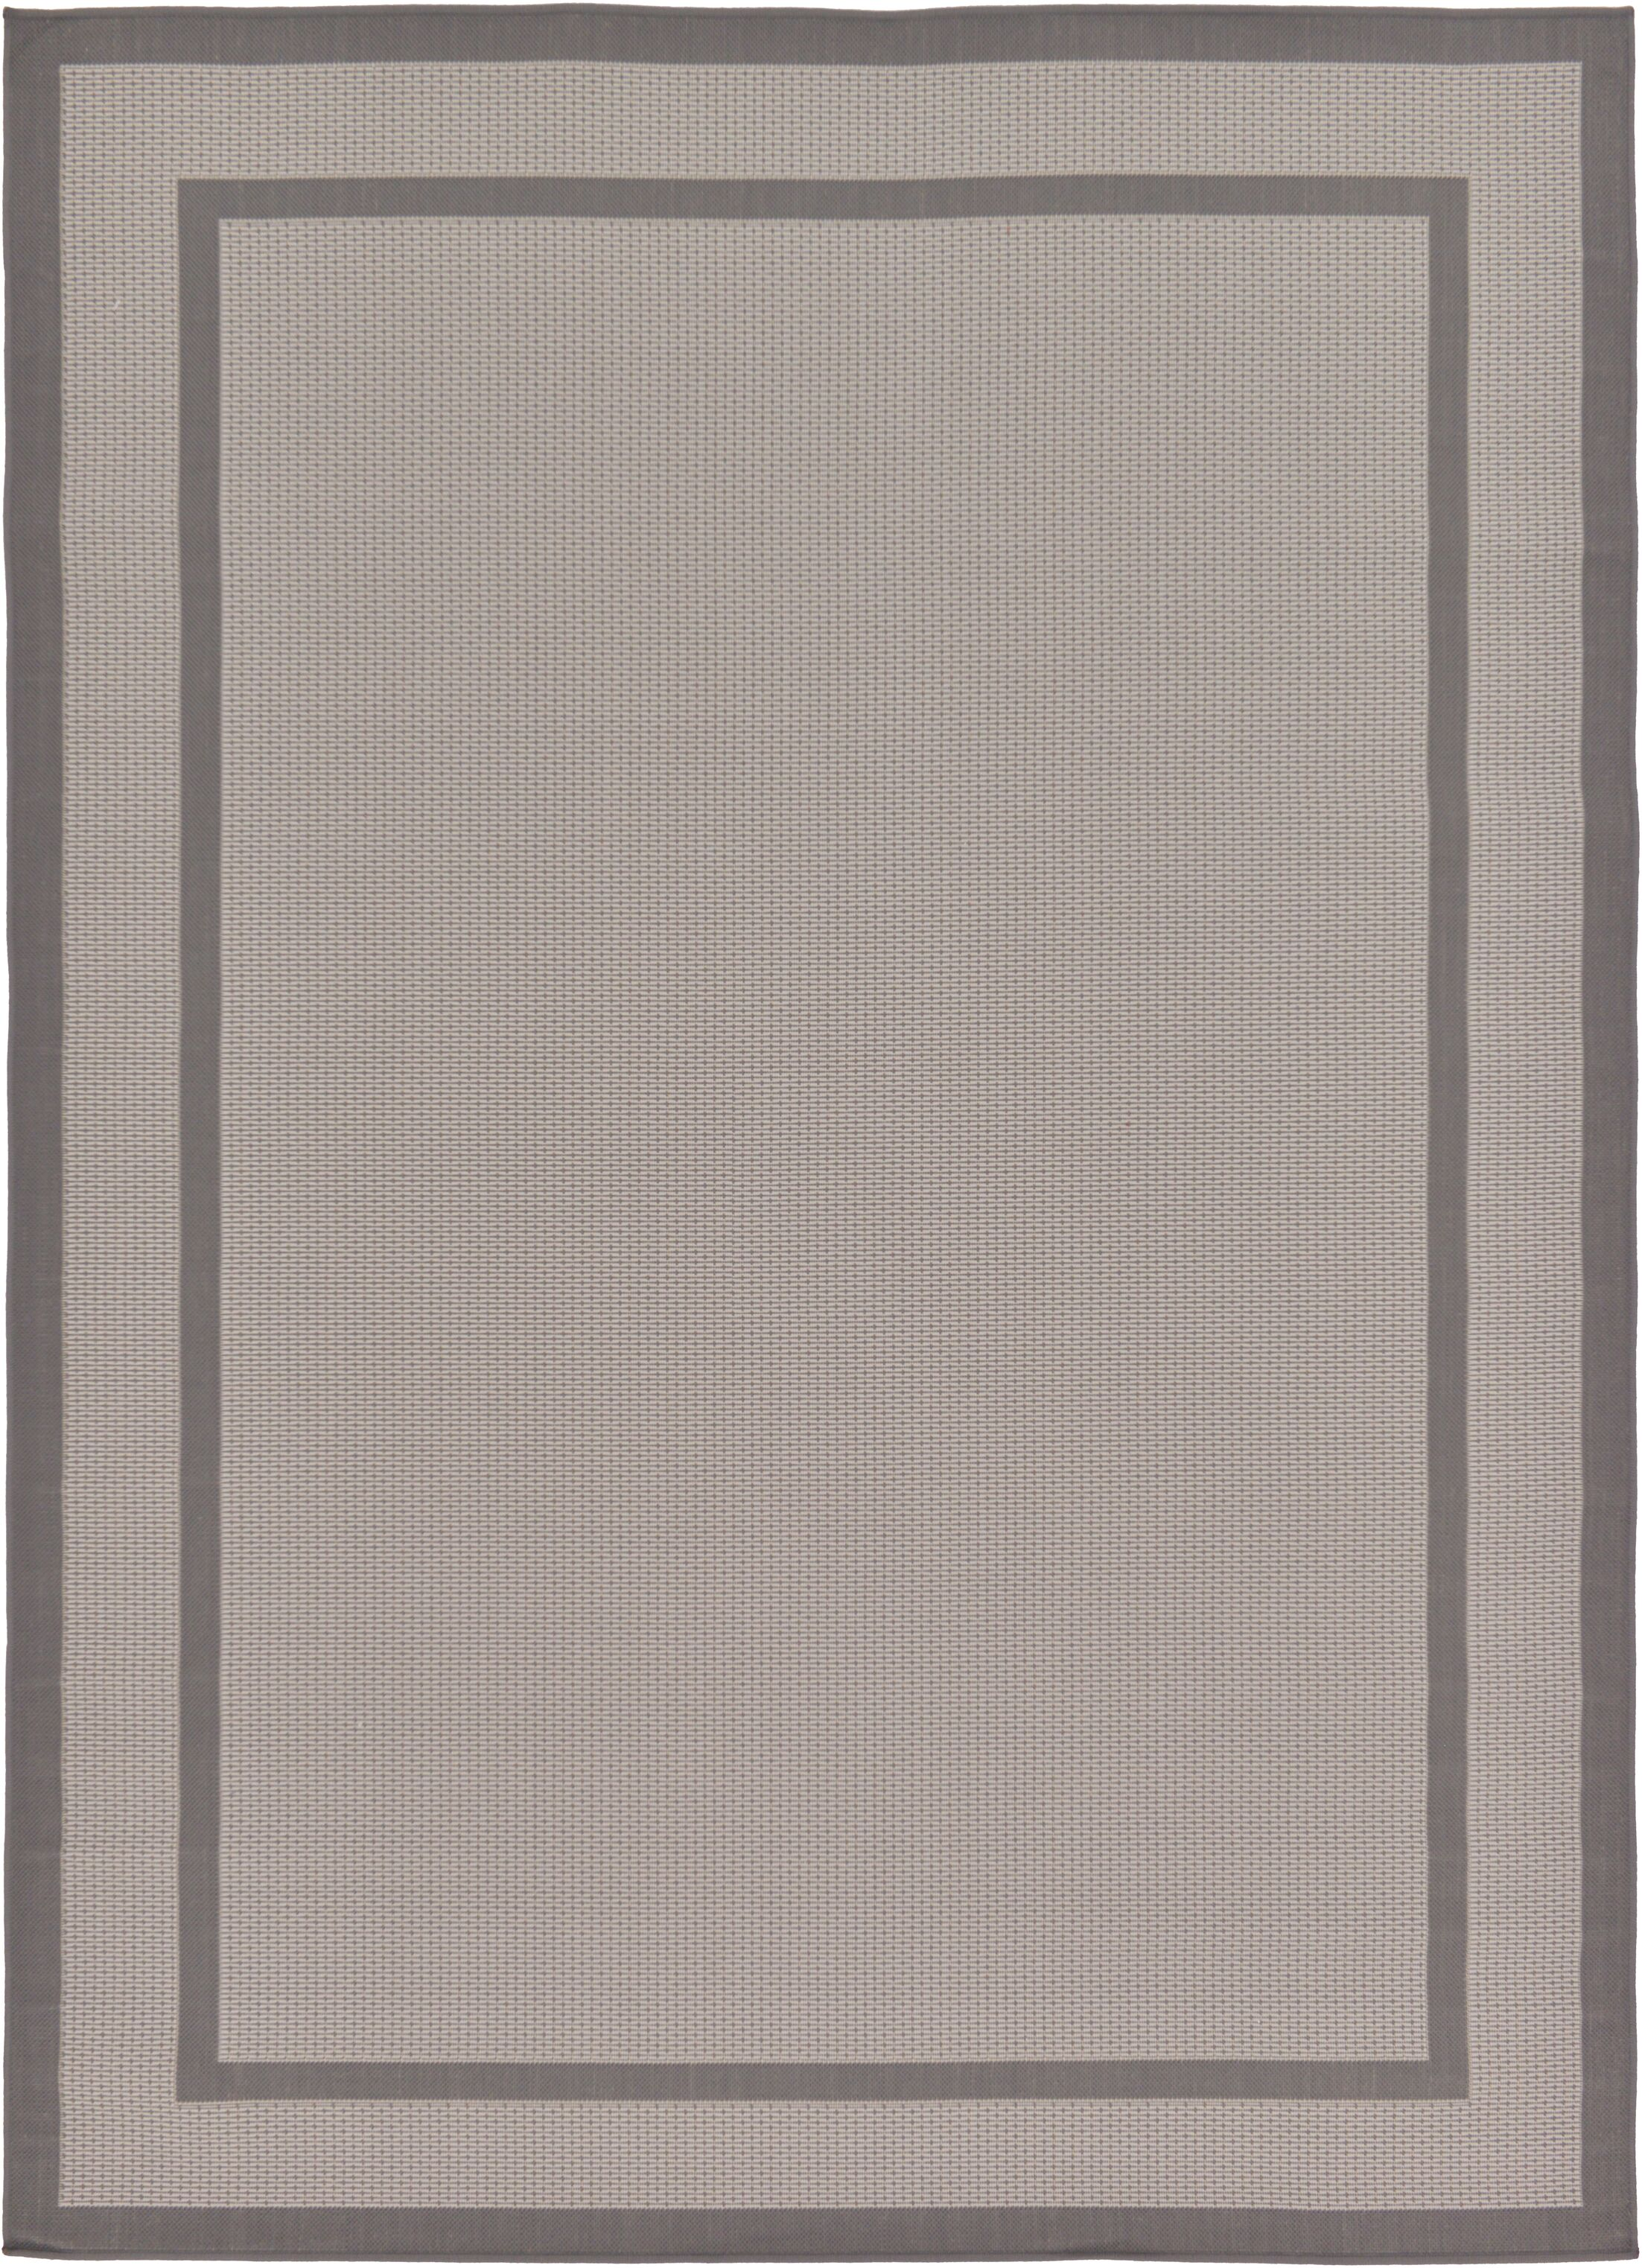 Marlborough Gray Outdoor Area Rug Rug Size: Rectangle 7' x 10'